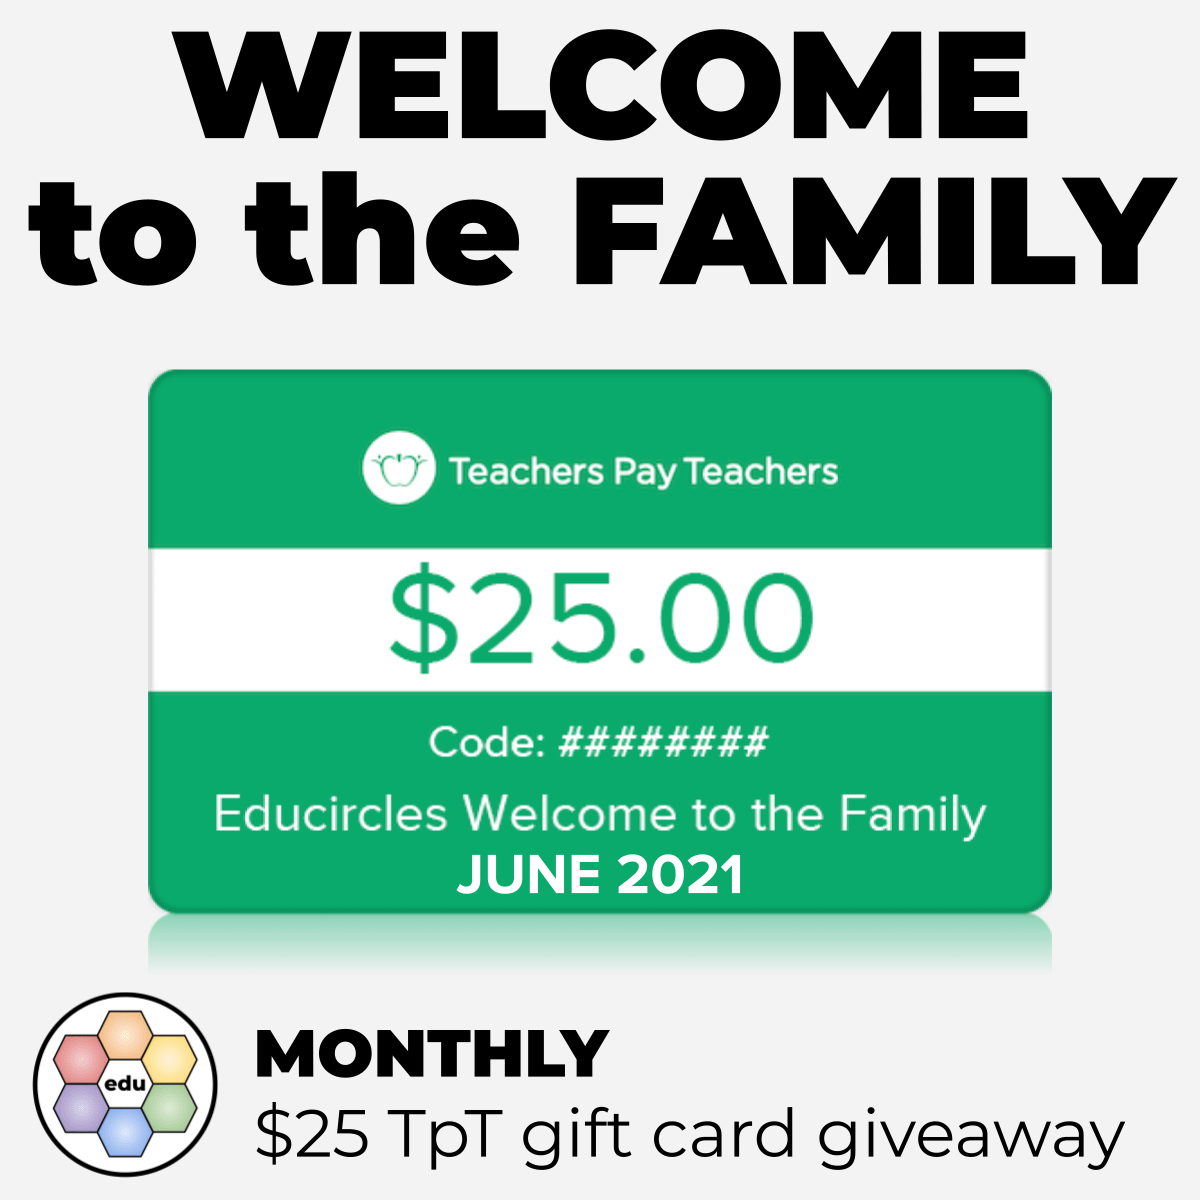 $25 Teacher Pay Teachers gift card giveaway - Educircles Welcome to the Family June 2021